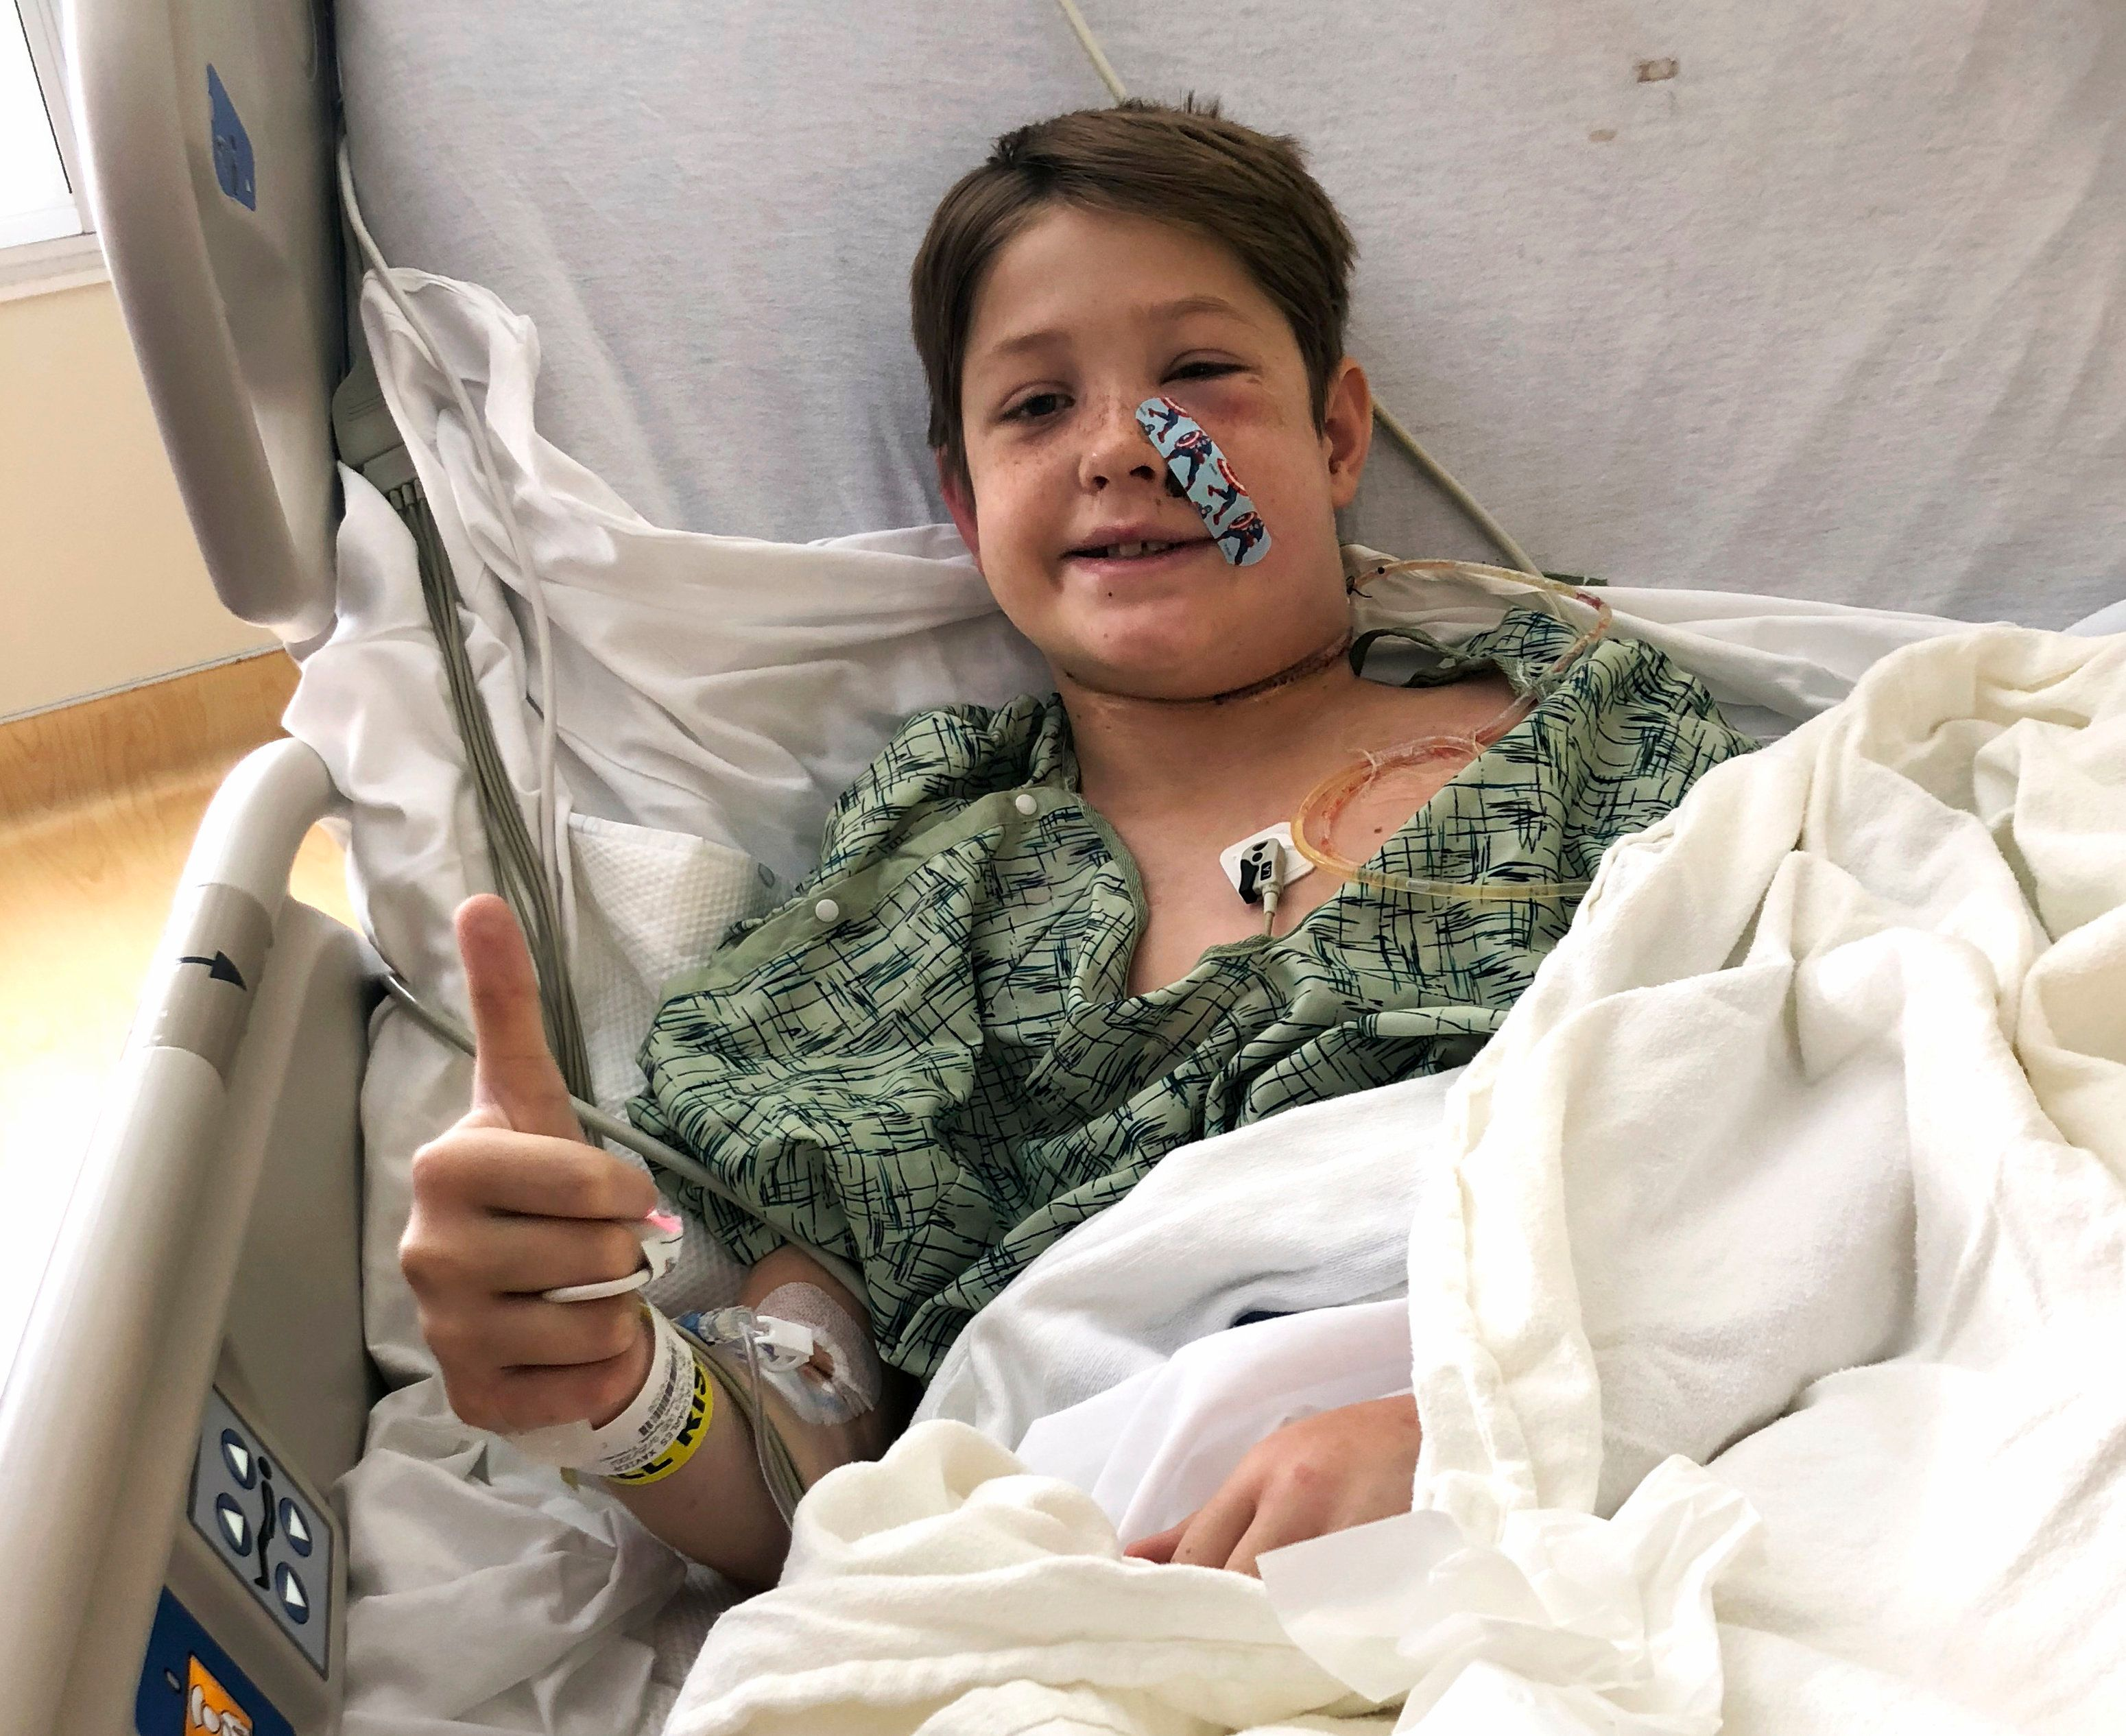 Boy survives after skewer pierces his skull, front to back